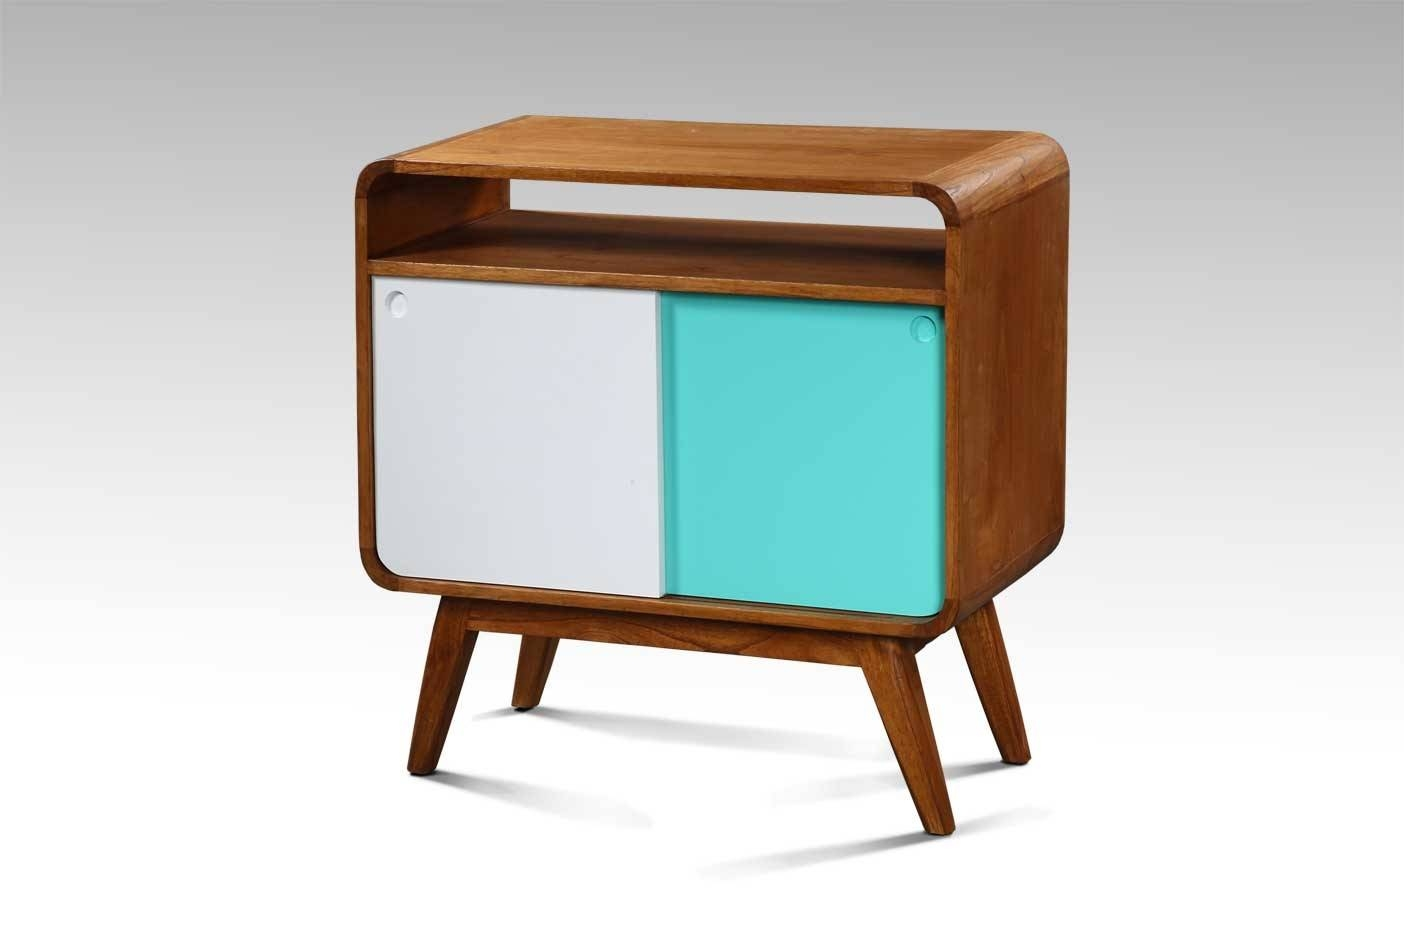 Pasion For Retro - Mia Casa - Dress Up Your Home for Small Sideboard Cabinets (Image 15 of 30)